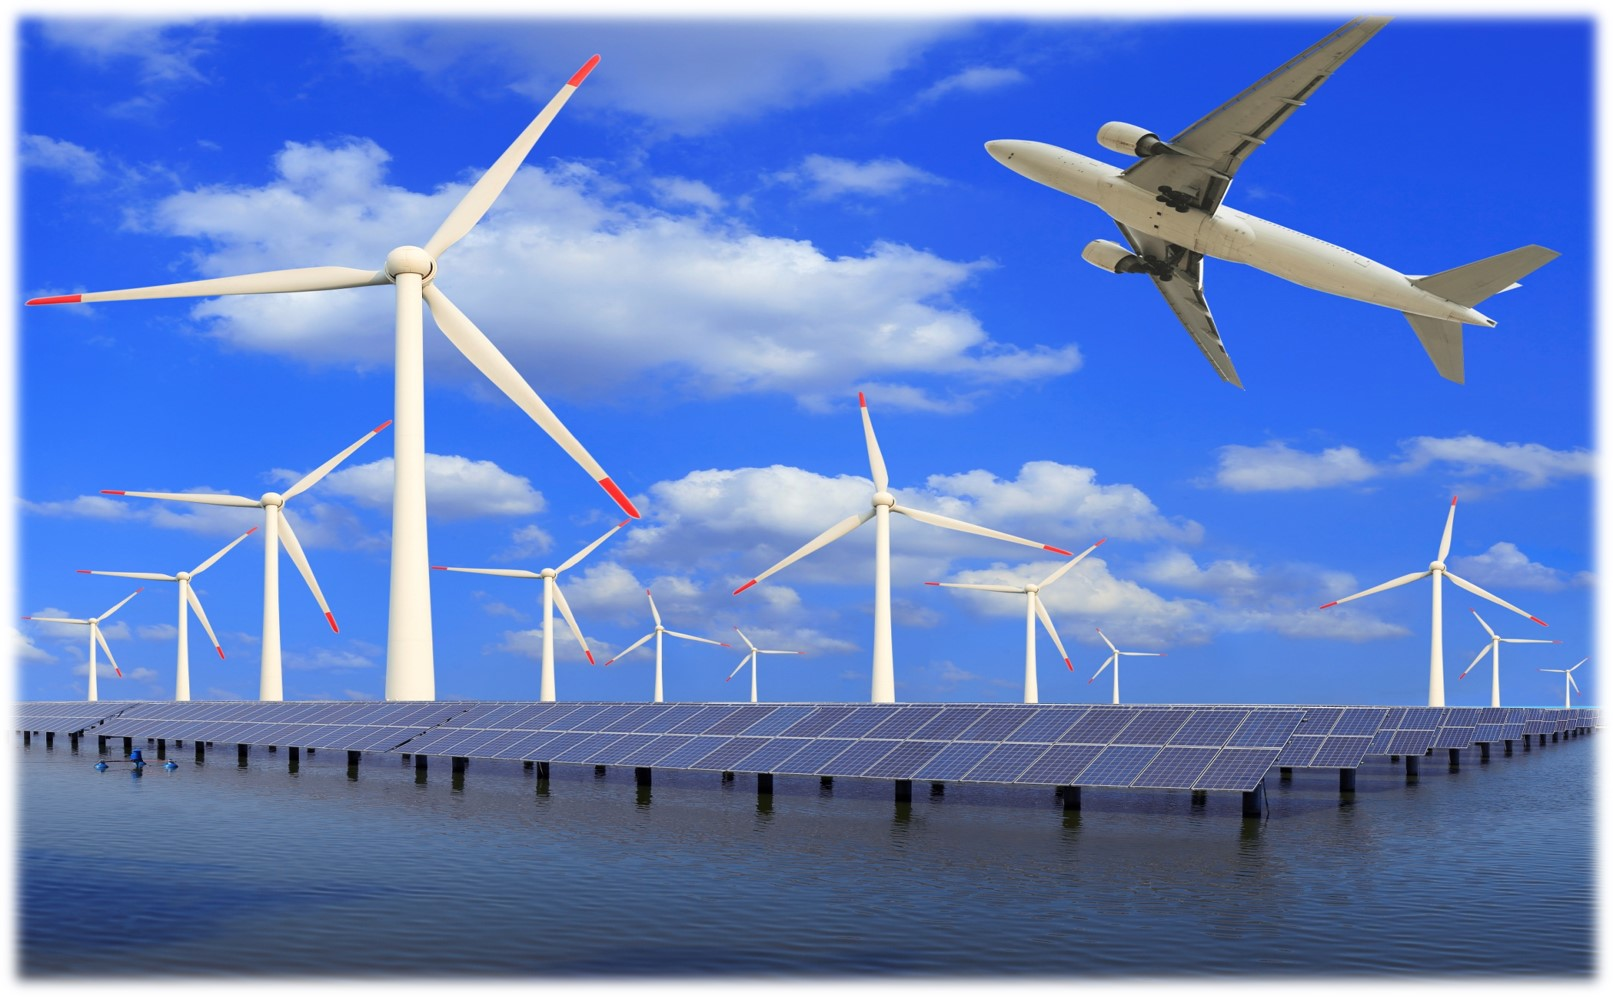 SC7130-UVB is ideal in protection of solar panels and windmill structures